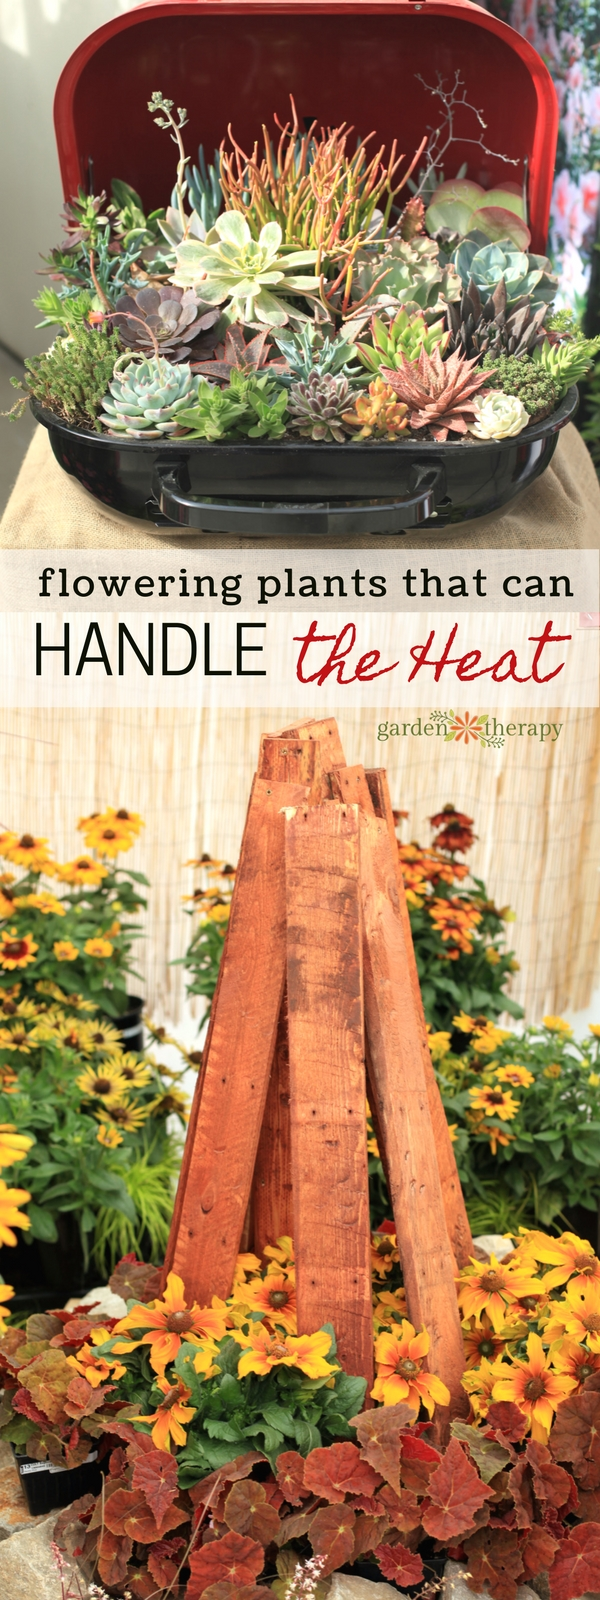 Flowers that can Handle the Heat